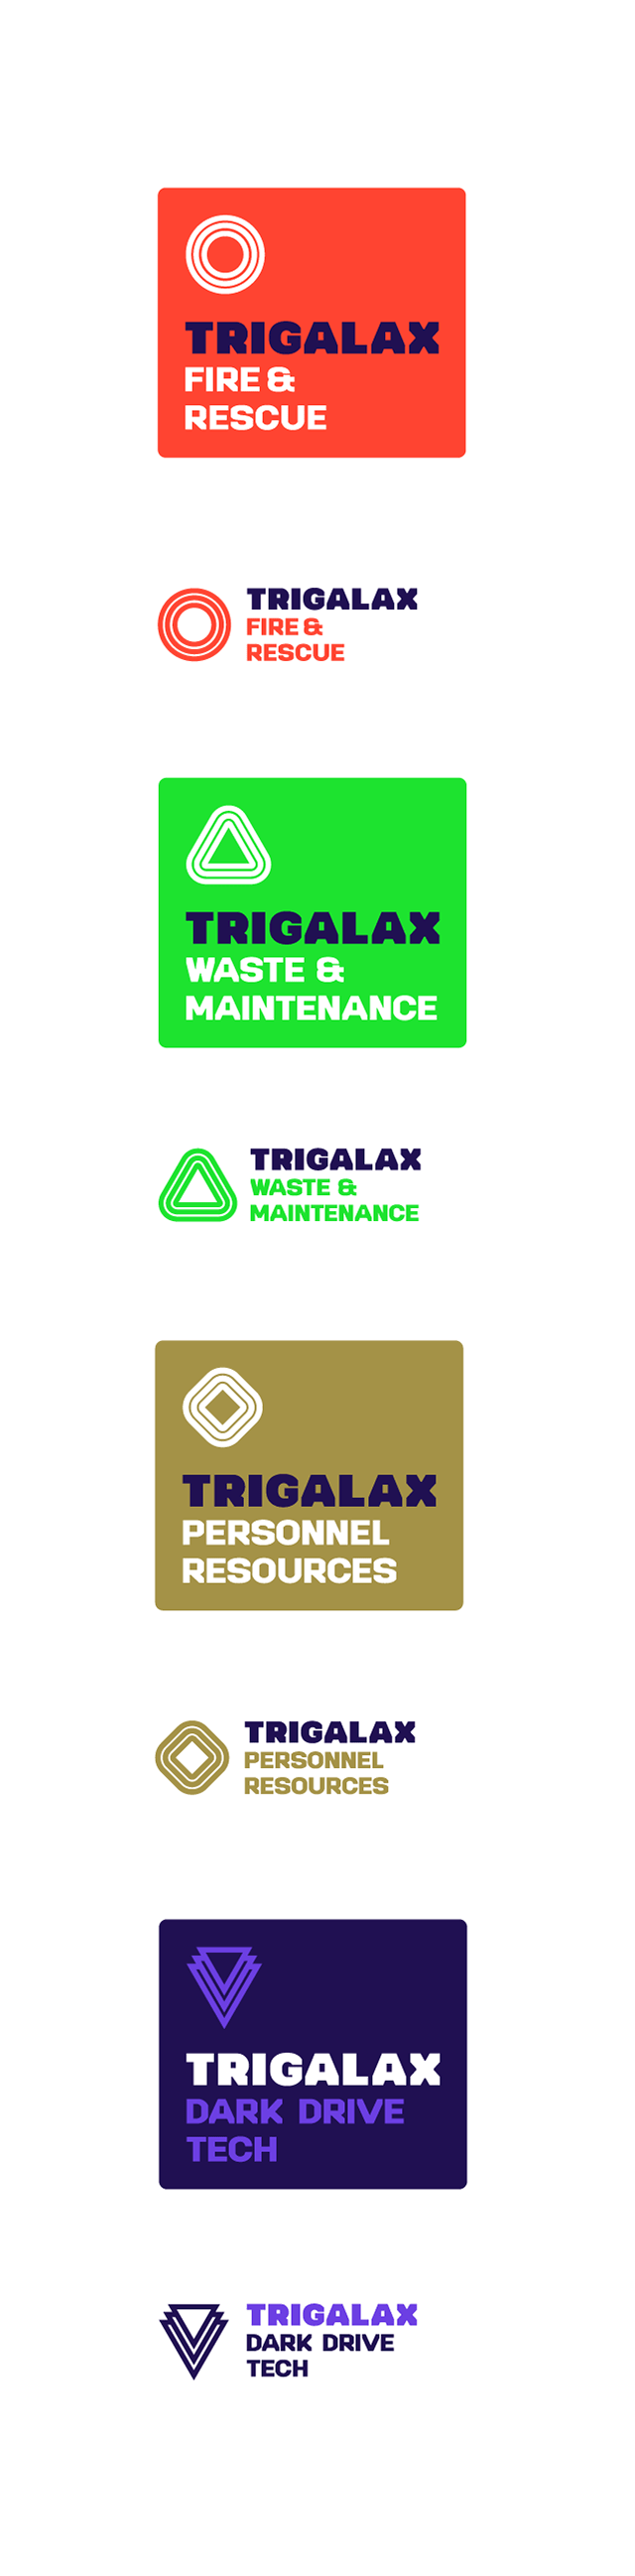 08_Trigalax-Space-Branding-division-badges-M-1